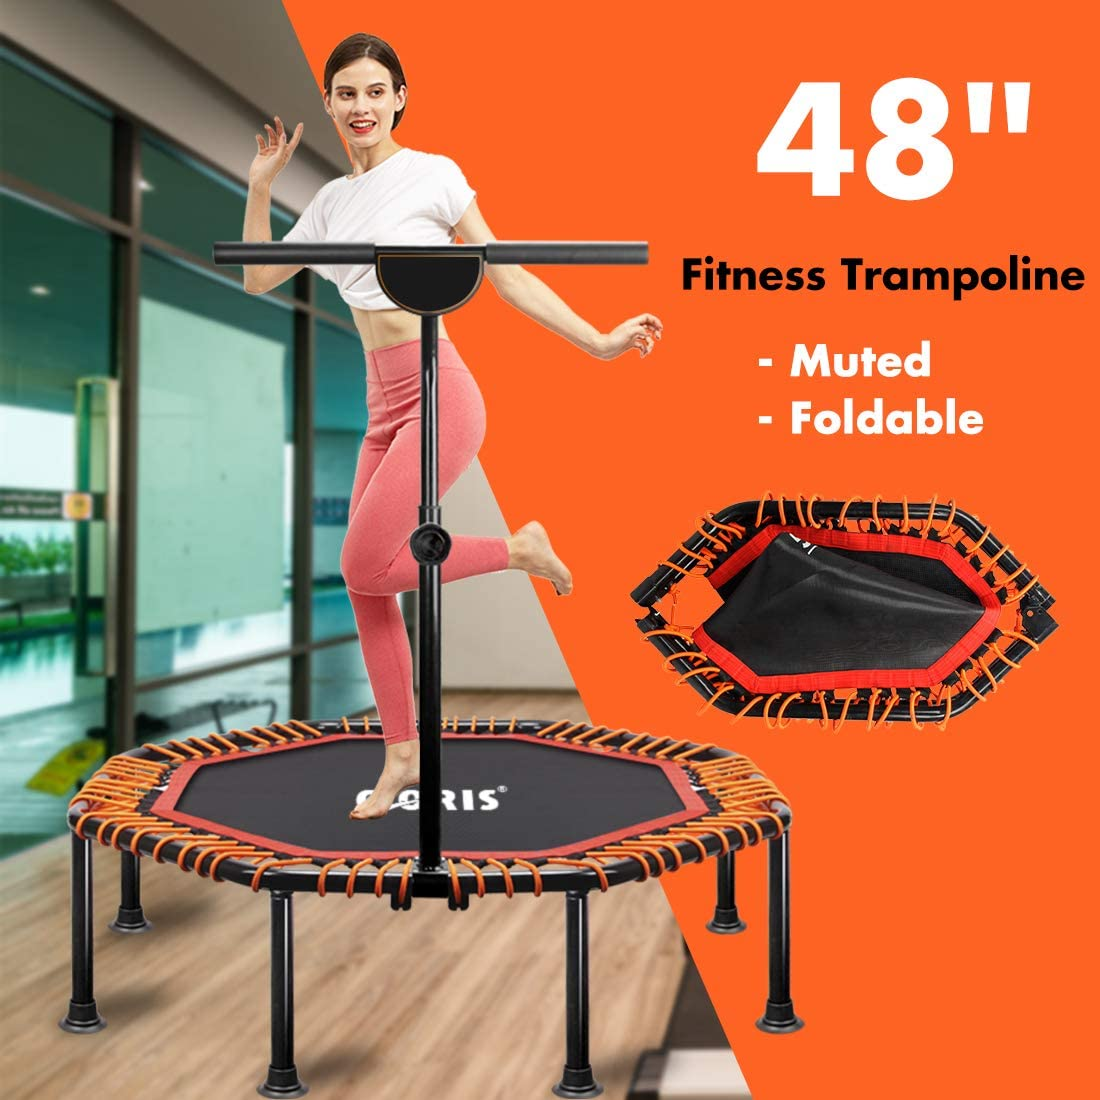 CLORIS Foldable Fitness Trampoline Mini Portable 50 Load 400 lbs Trampoline with Adjustable Handle Exercise Rebounder for Indoor//Garden//Workout with Knee Pad